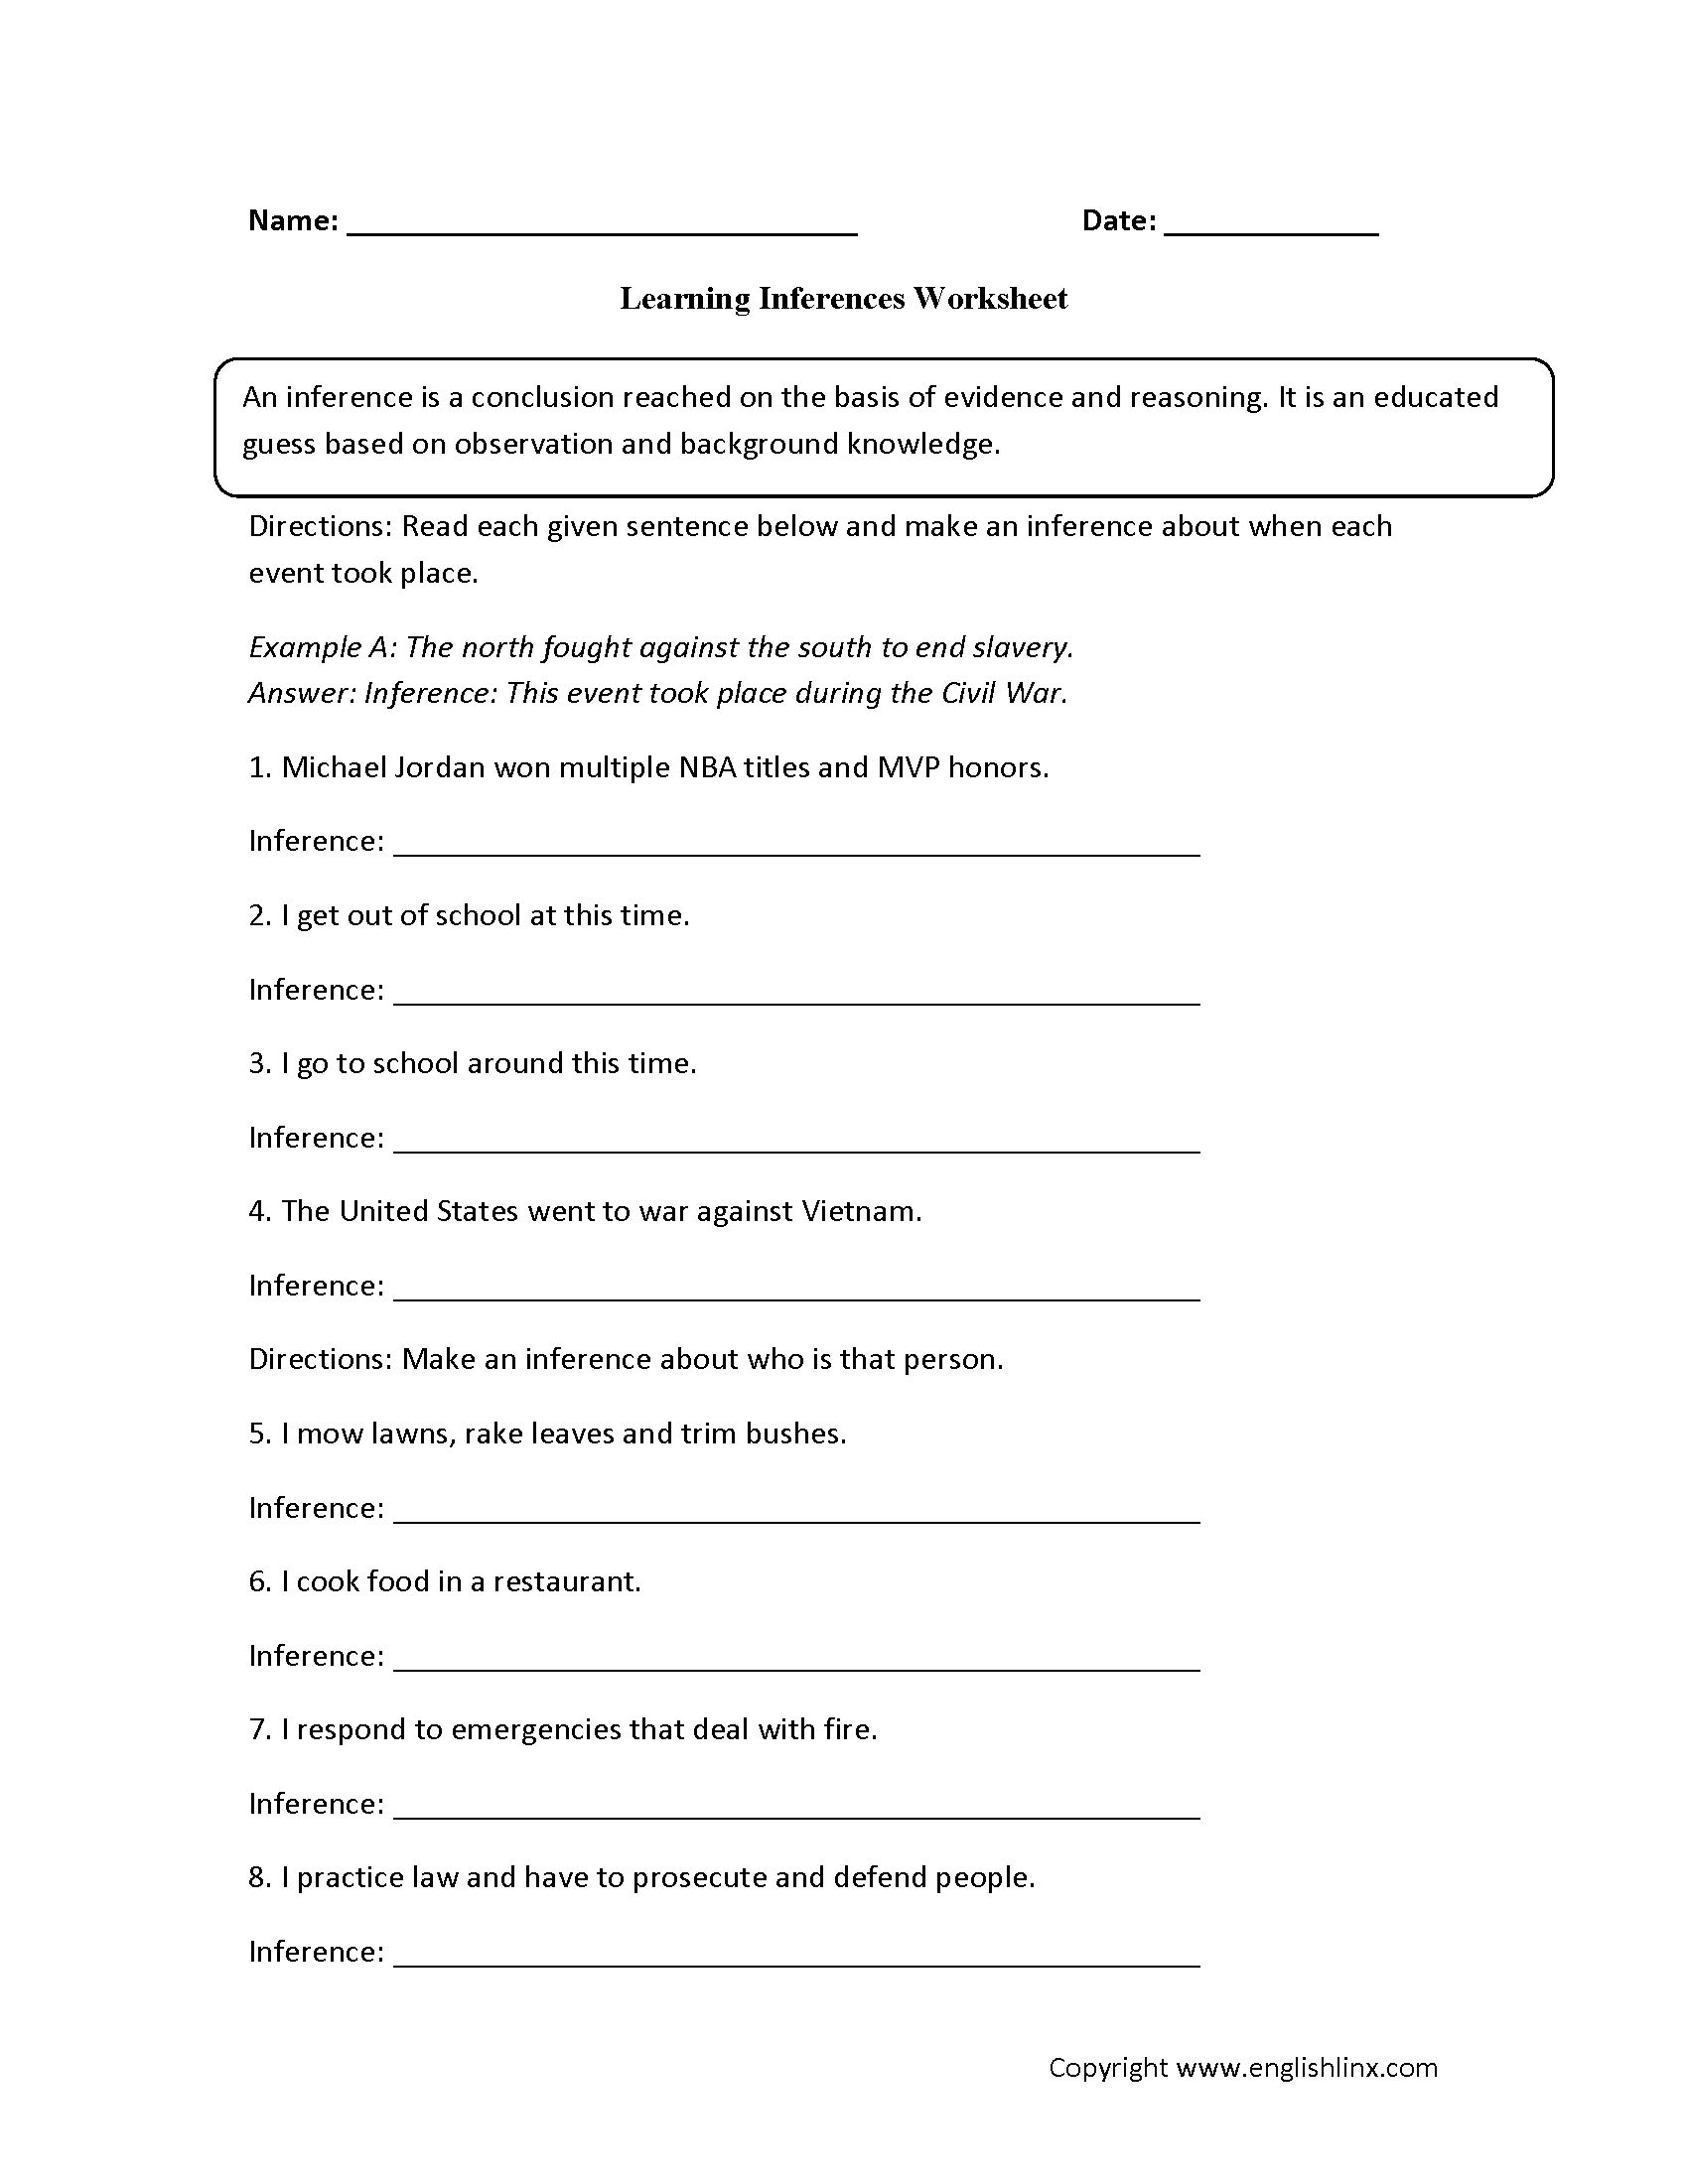 Learning Inference Worksheets